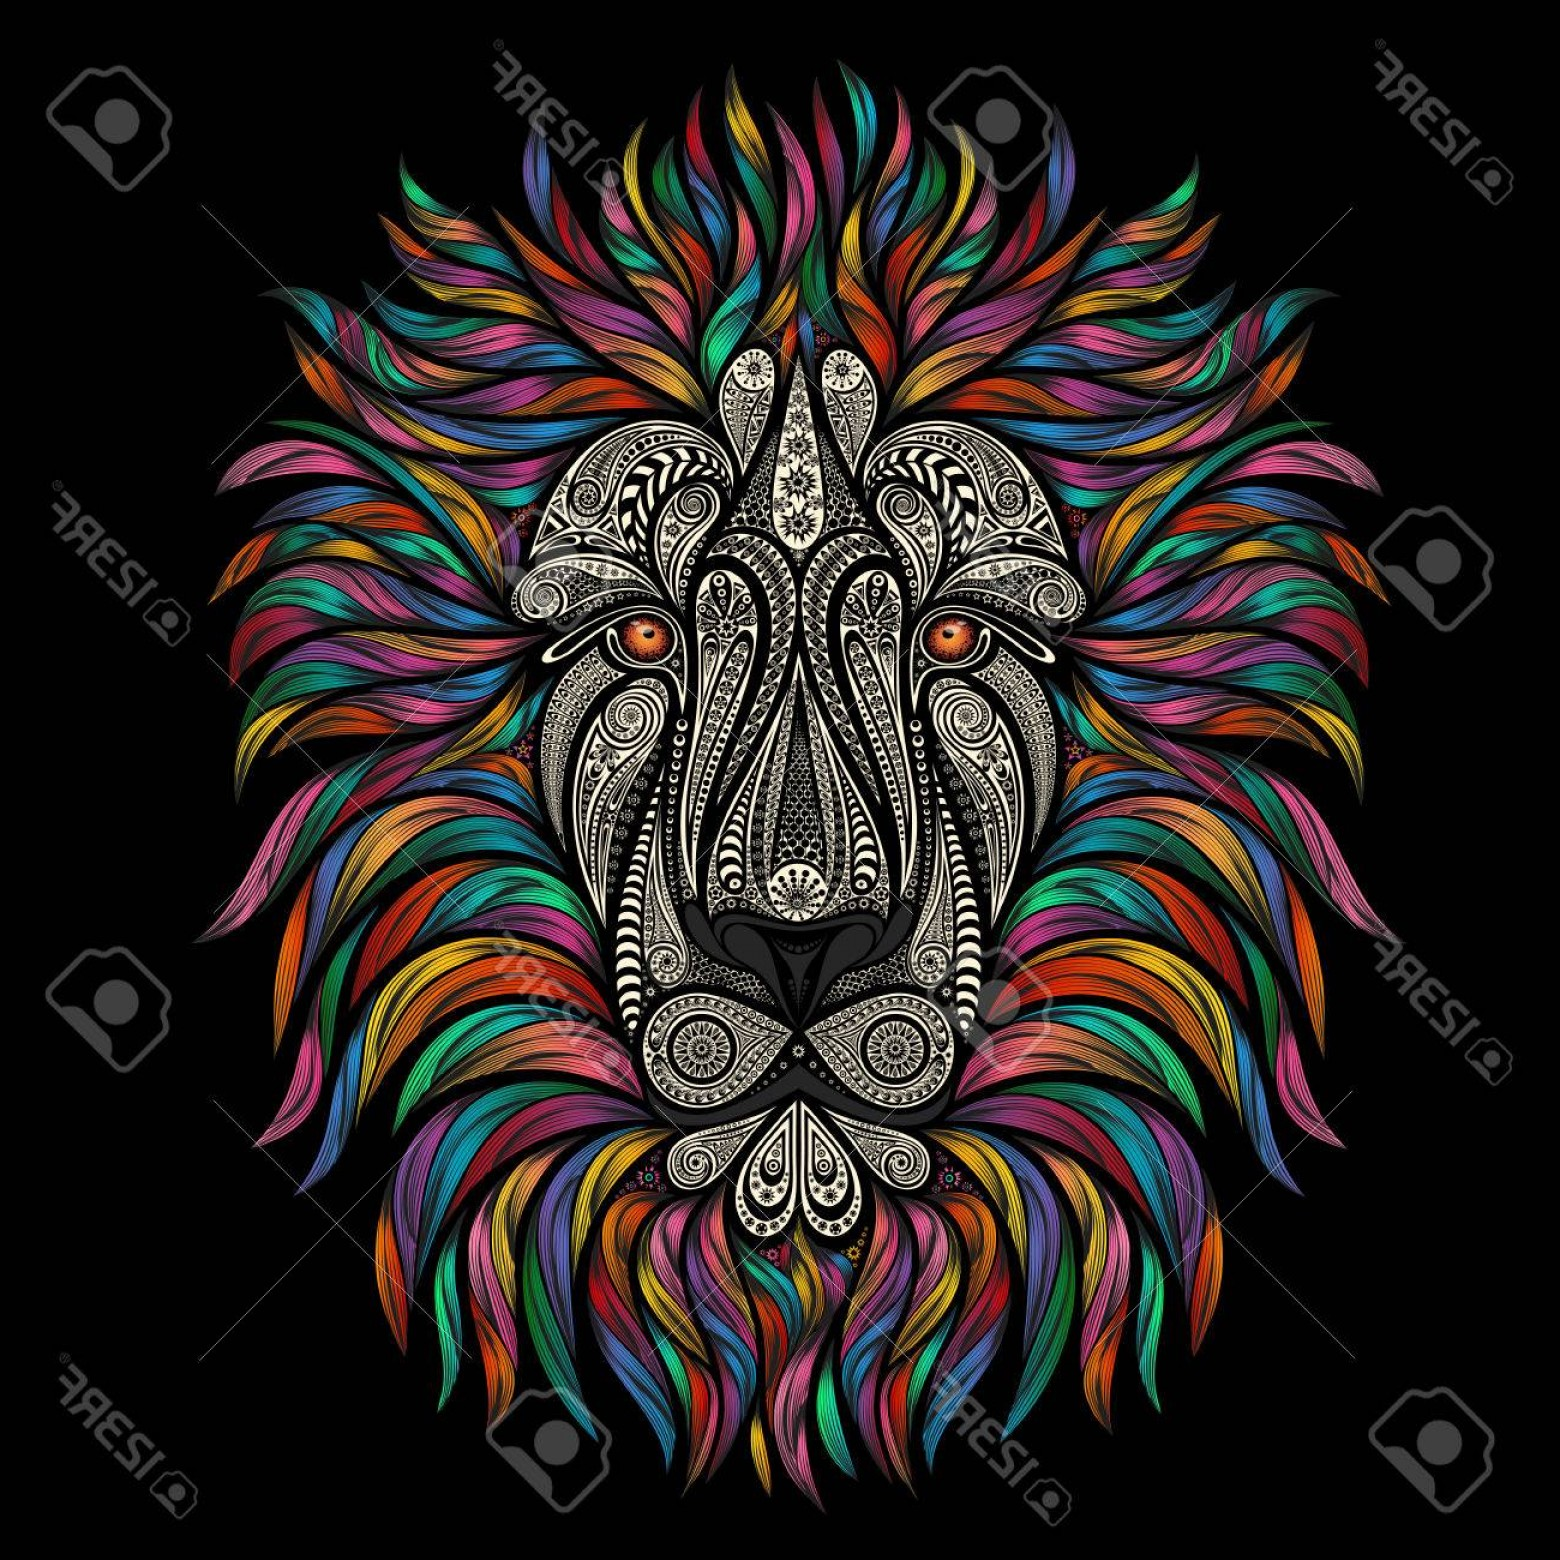 Beautiful Patterns Vector: Photostock Vector Vector Lion Of Beautiful Patterns With A Color Mane On A Black Background